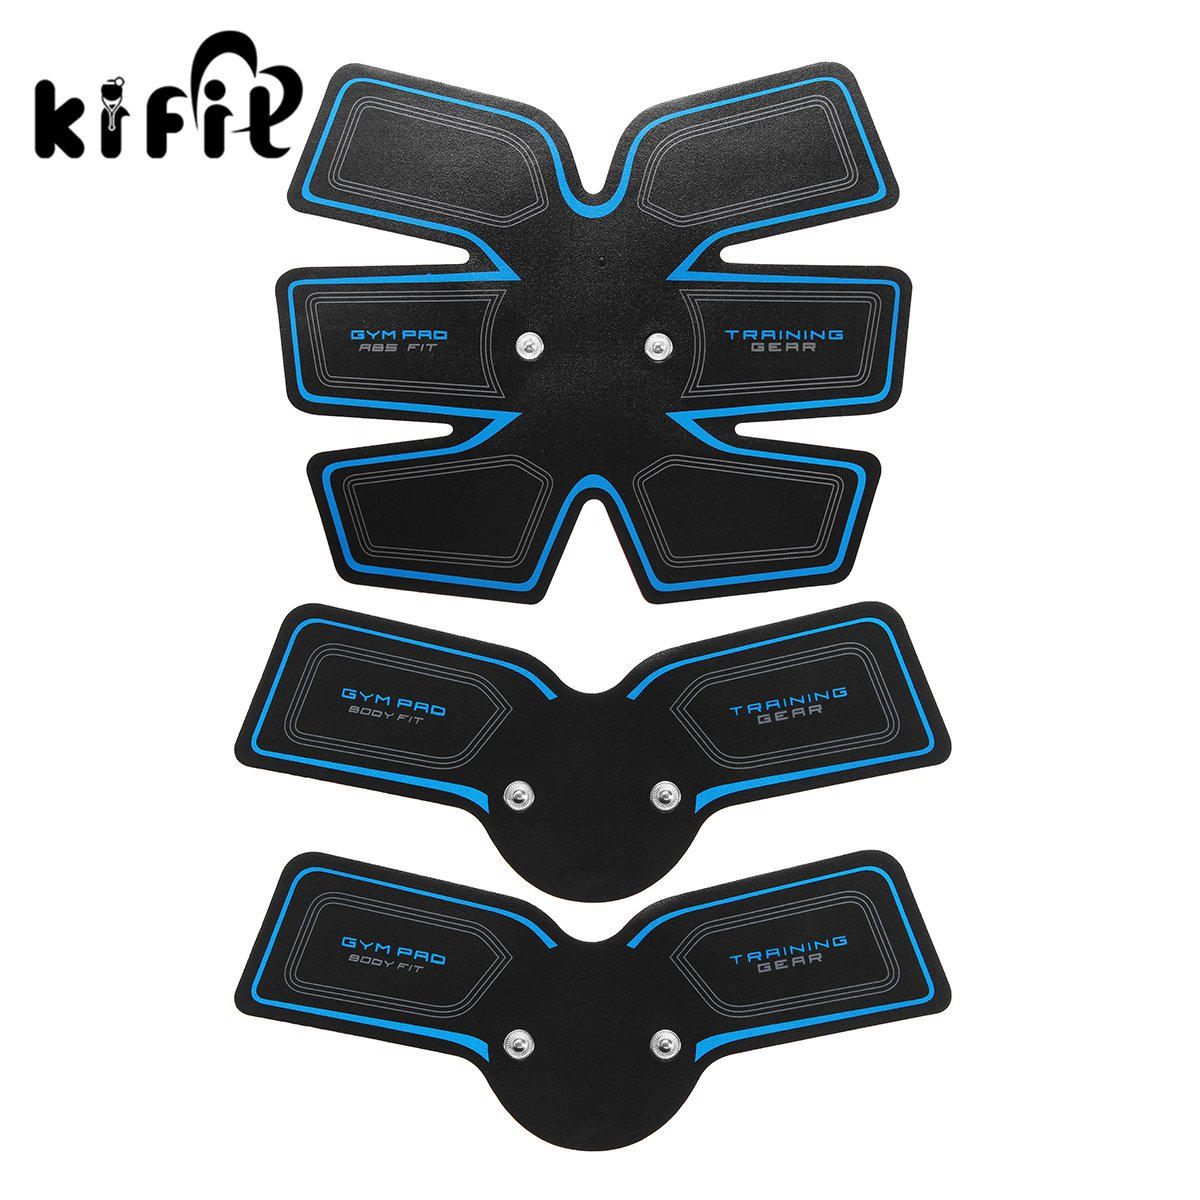 Kifit USB Man Muscle Fit Training Gear Abdominal Body Home Exercise Shape Fitness Set Electric Weight Loss Slimming Massager<br>